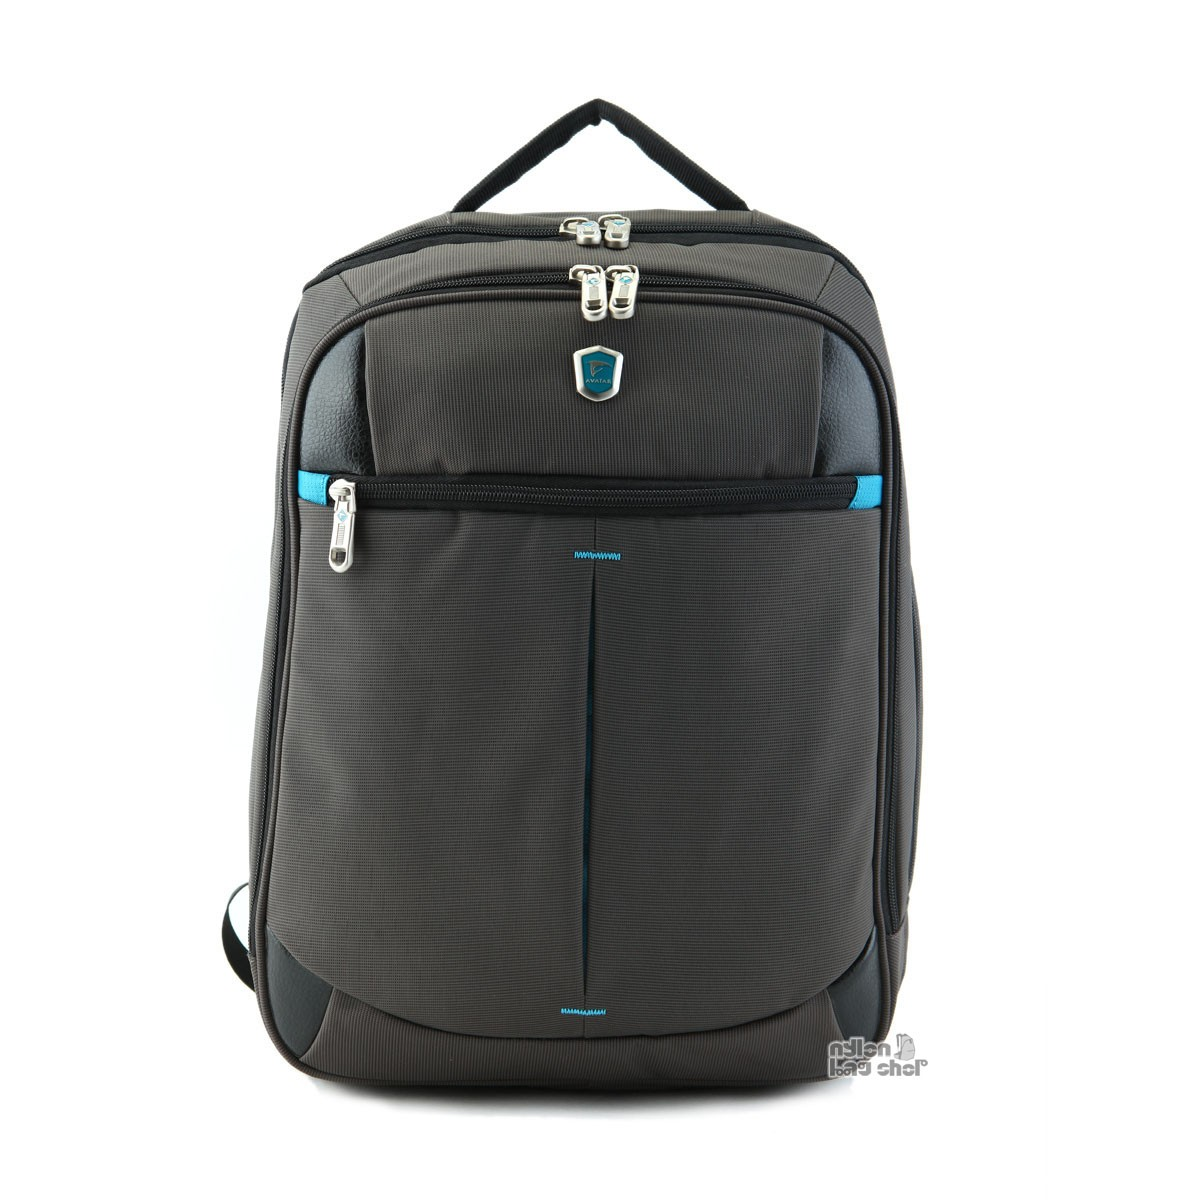 Laptop Case Backpack kZaM4KpQ